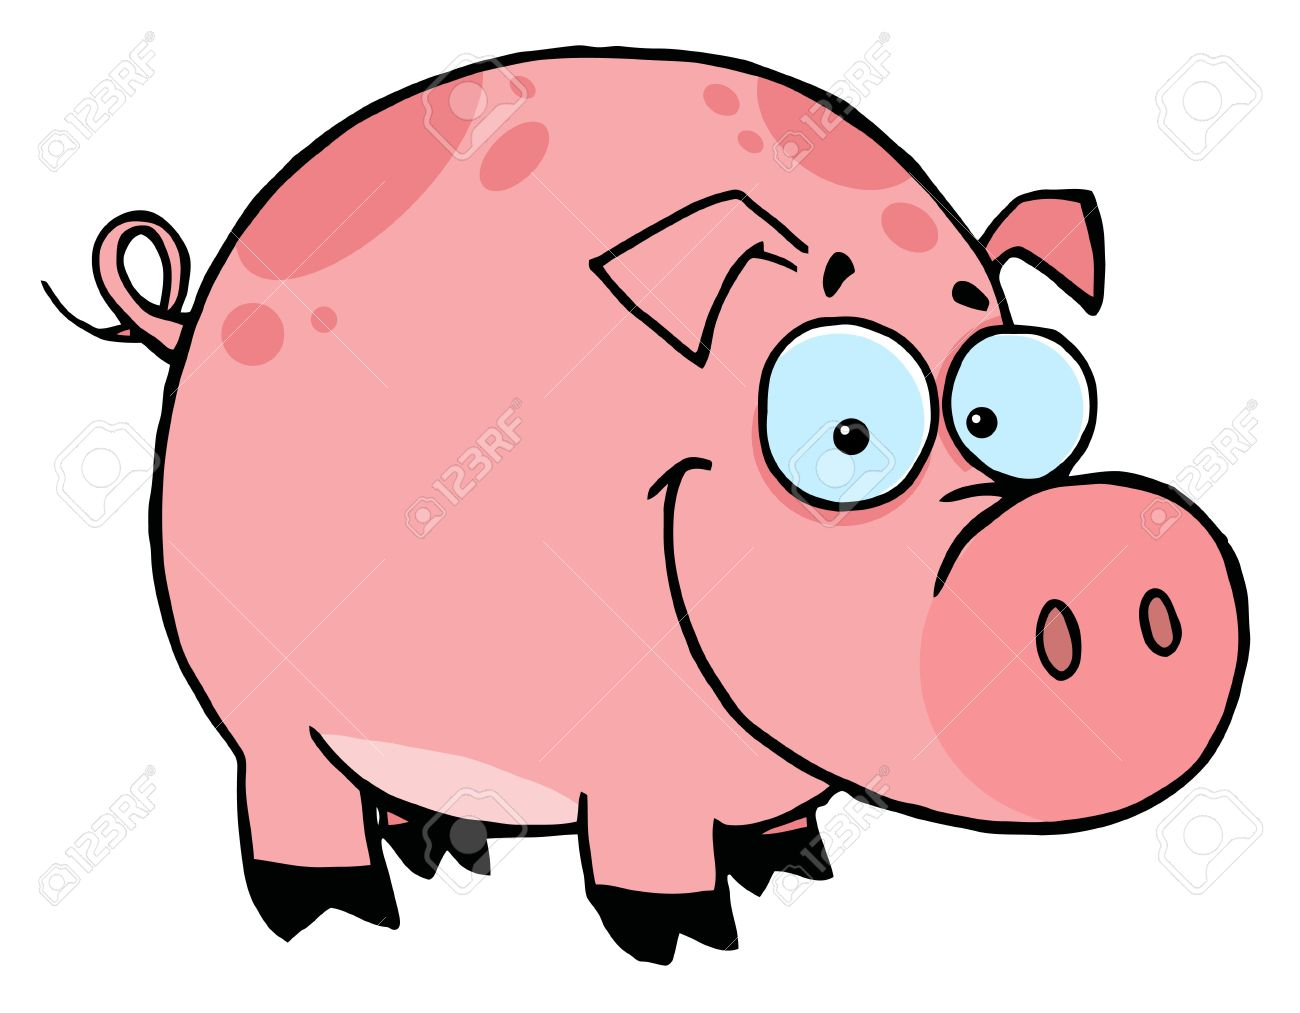 Pink Pig Drawing at GetDrawings.com | Free for personal use Pink Pig ...